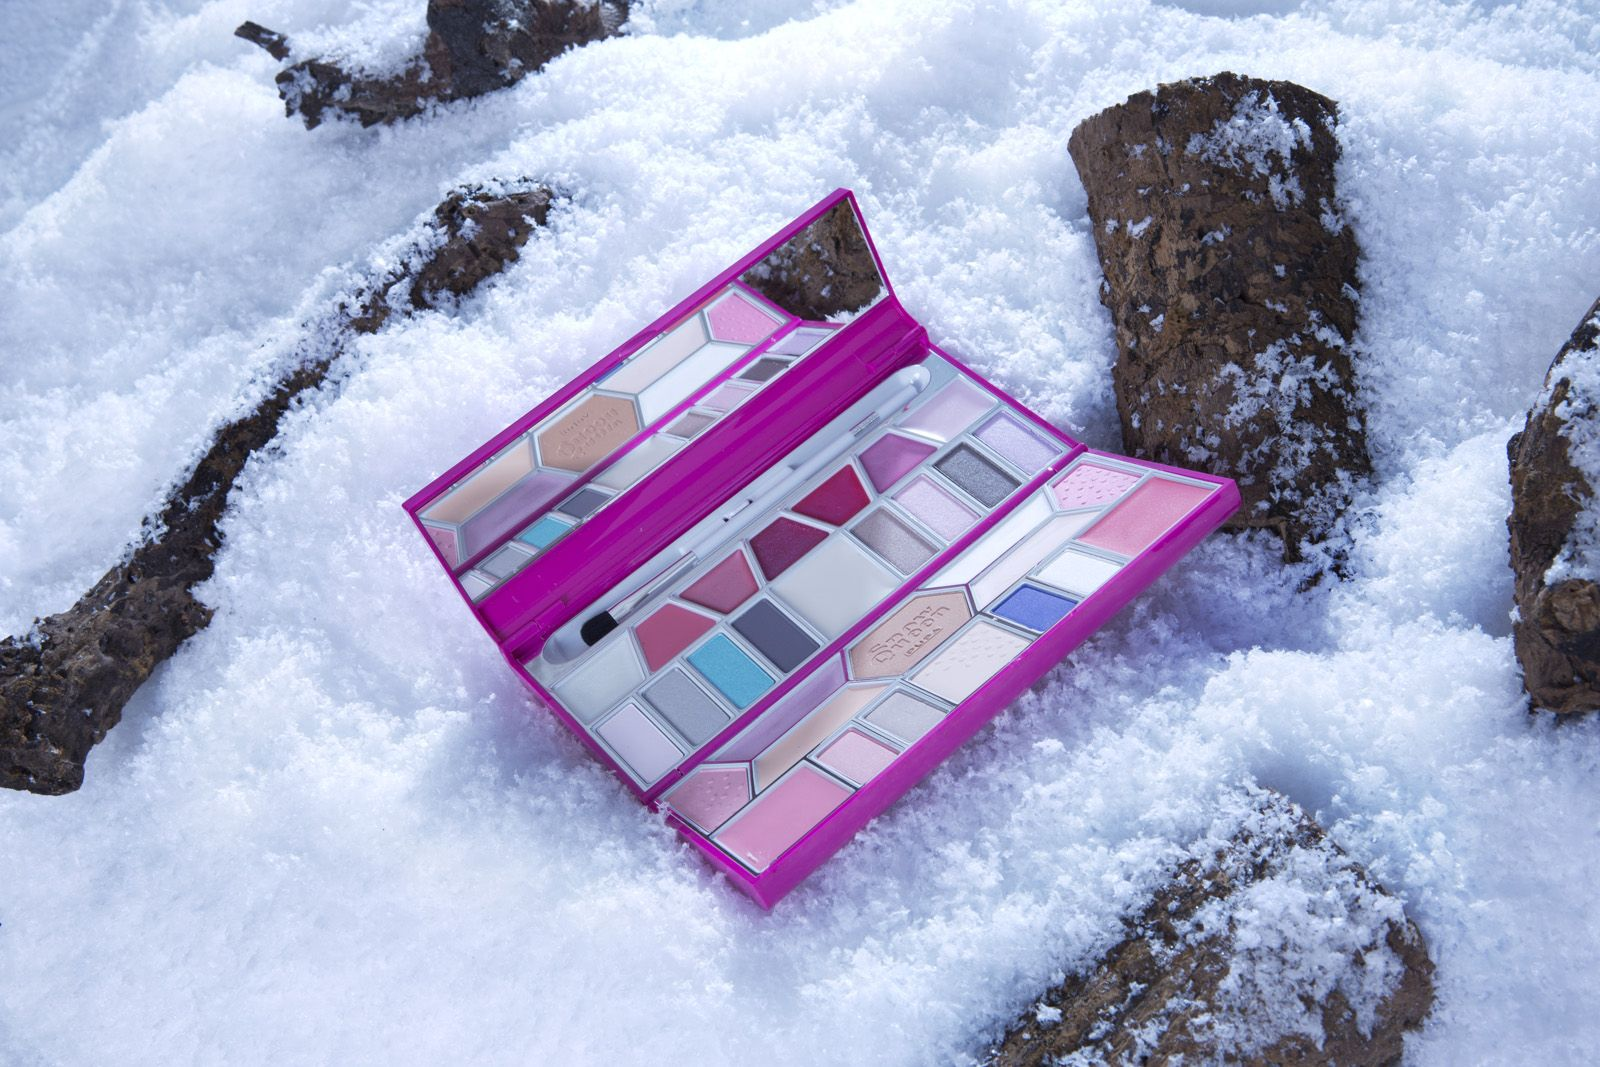 CRYSTAL PALETTE SMALL Pure and immense icebergs that stretch out in the ocean. The charm of far away and immaculate places, to just close your eyes and start dreaming. #SNOWQUEEN #CHRISTMASGIFT #PUPA